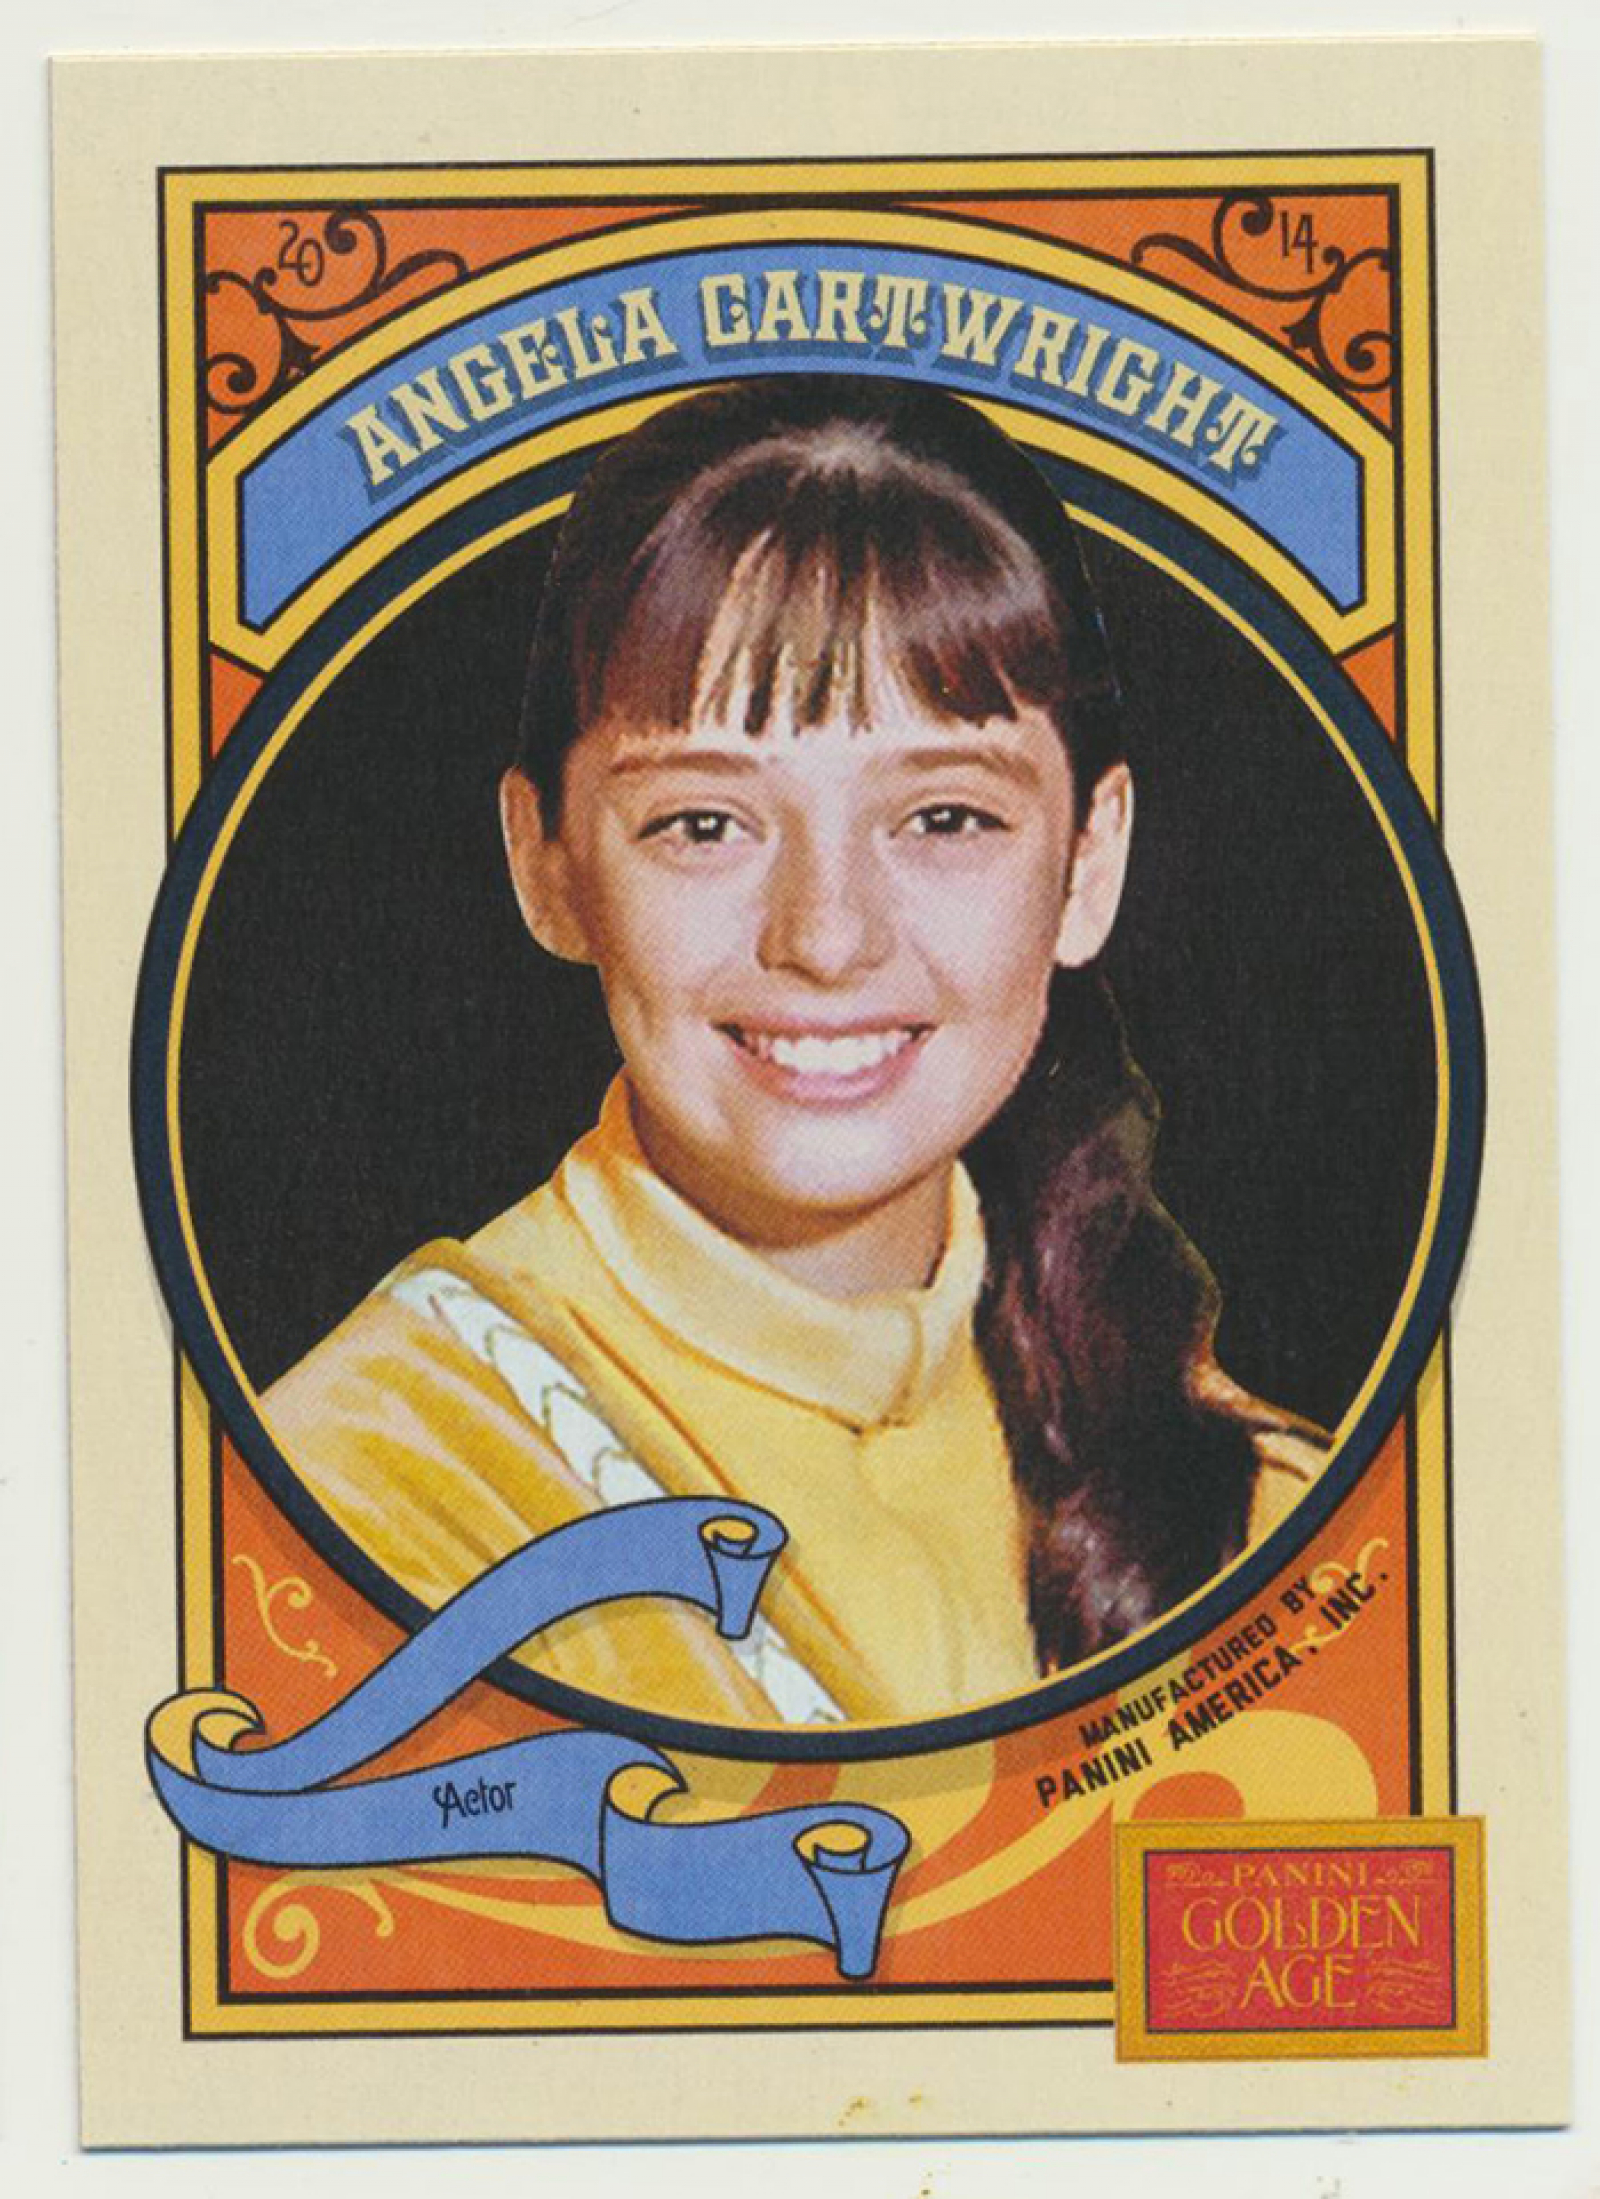 32 Angela Cartwright Golden Age Trading Card